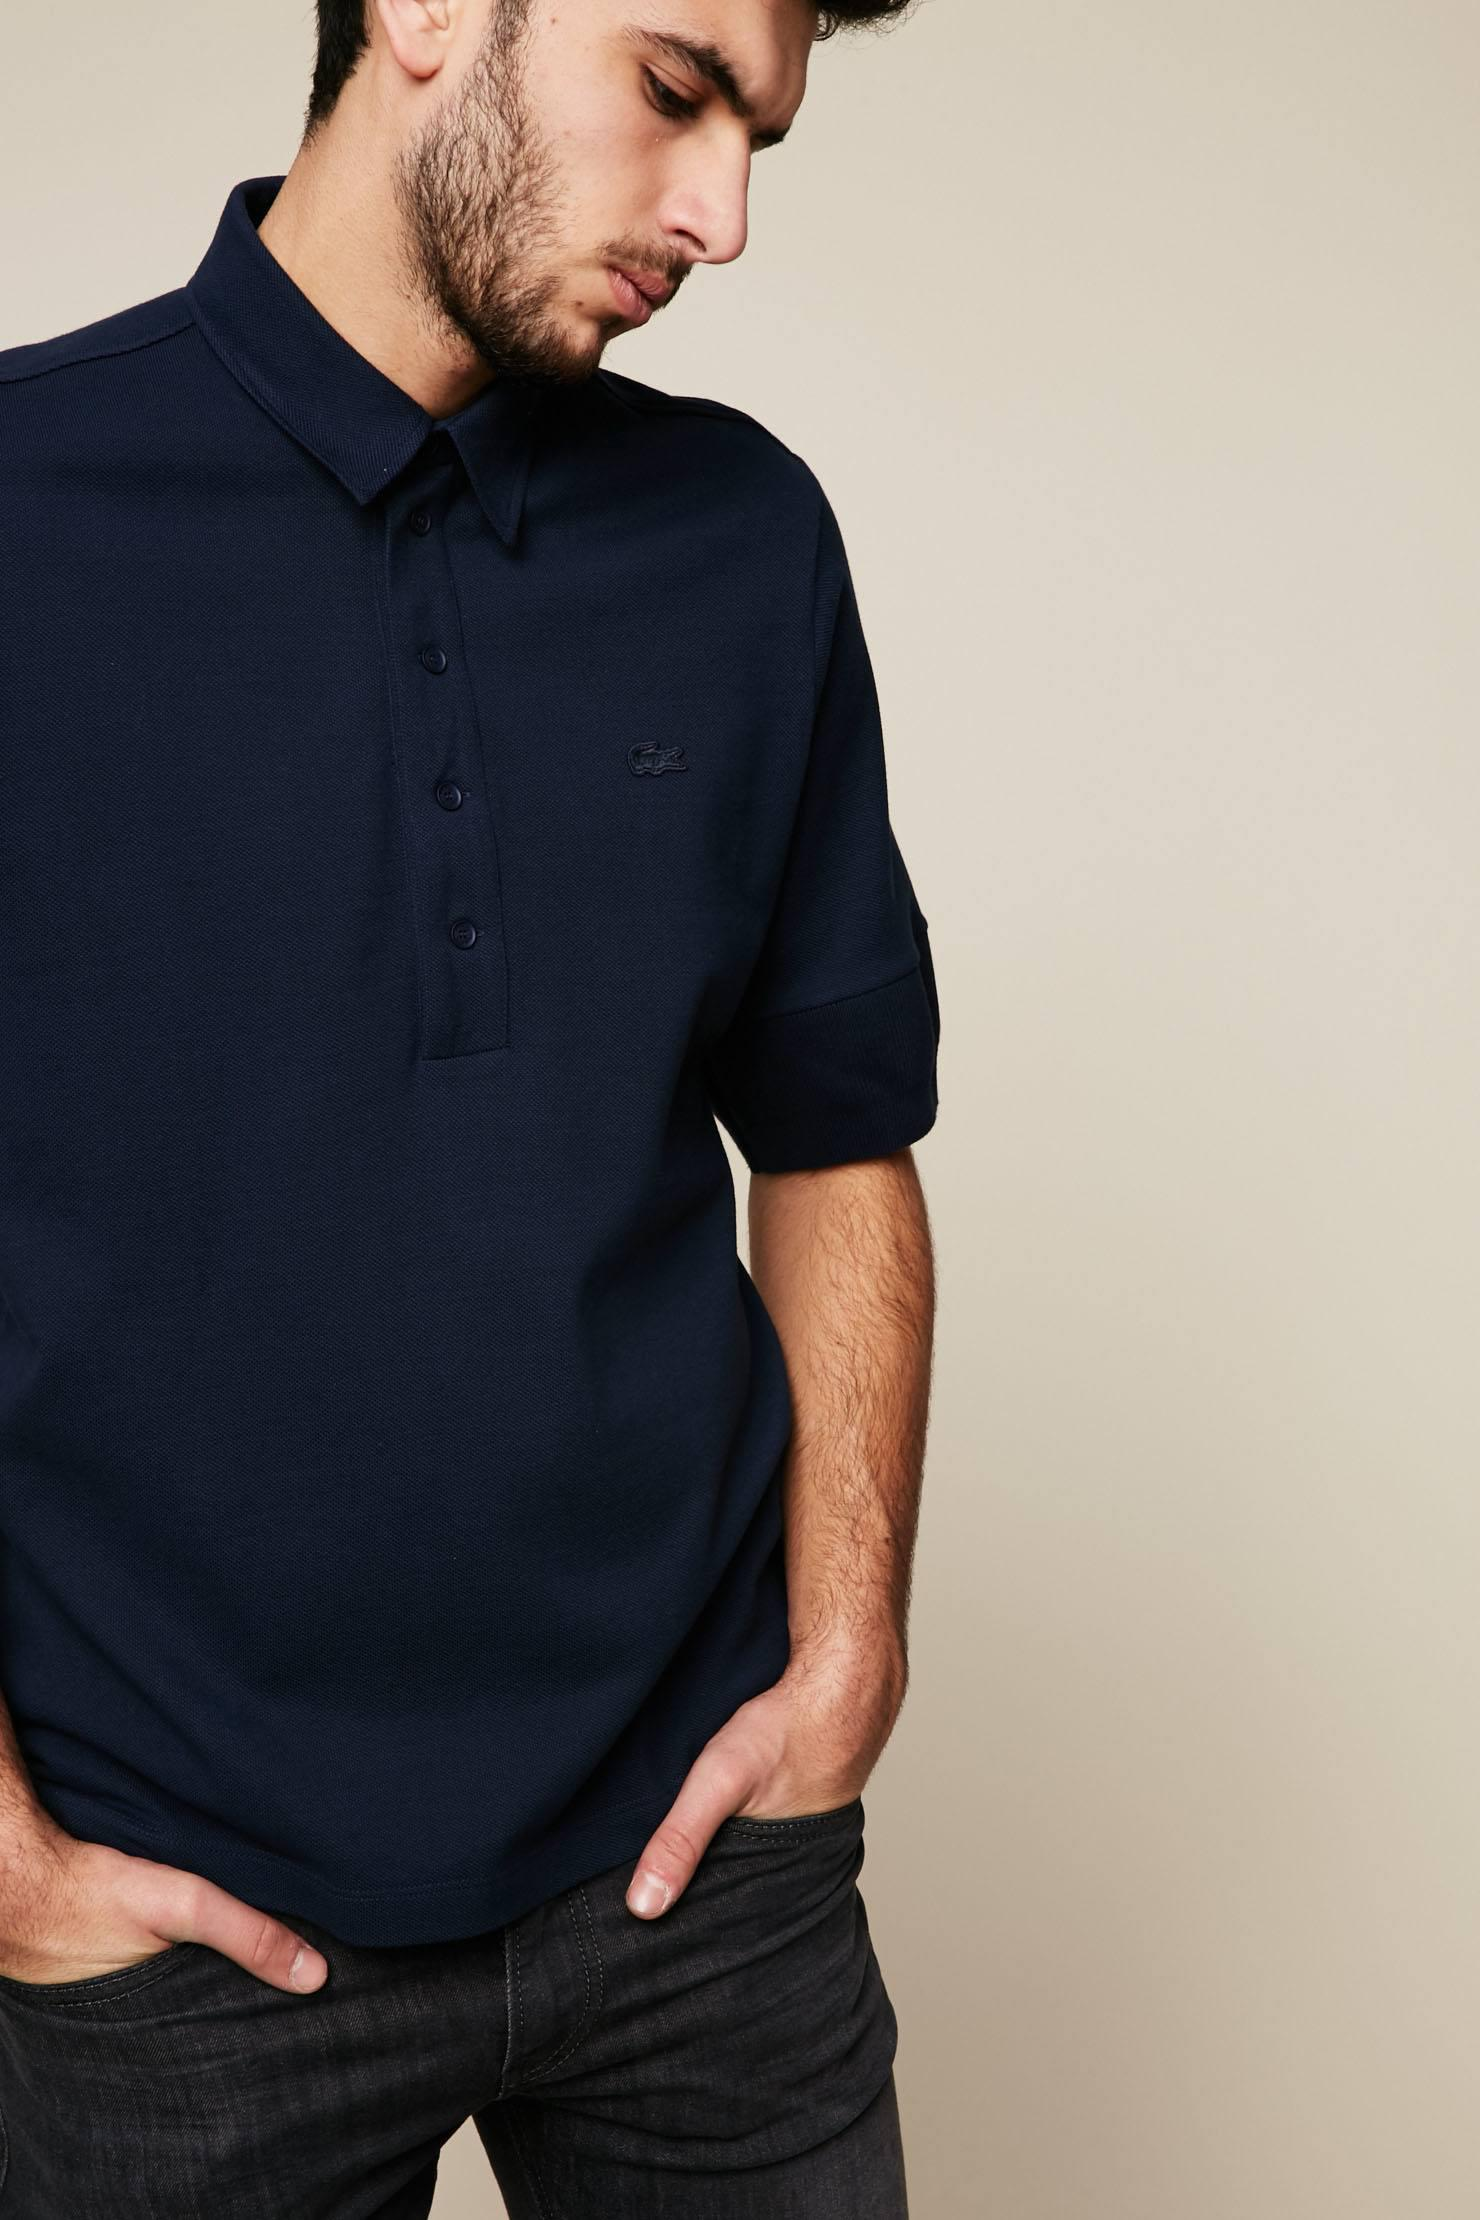 Lyst lacoste polo shirt in blue for men for Boys lacoste polo shirt